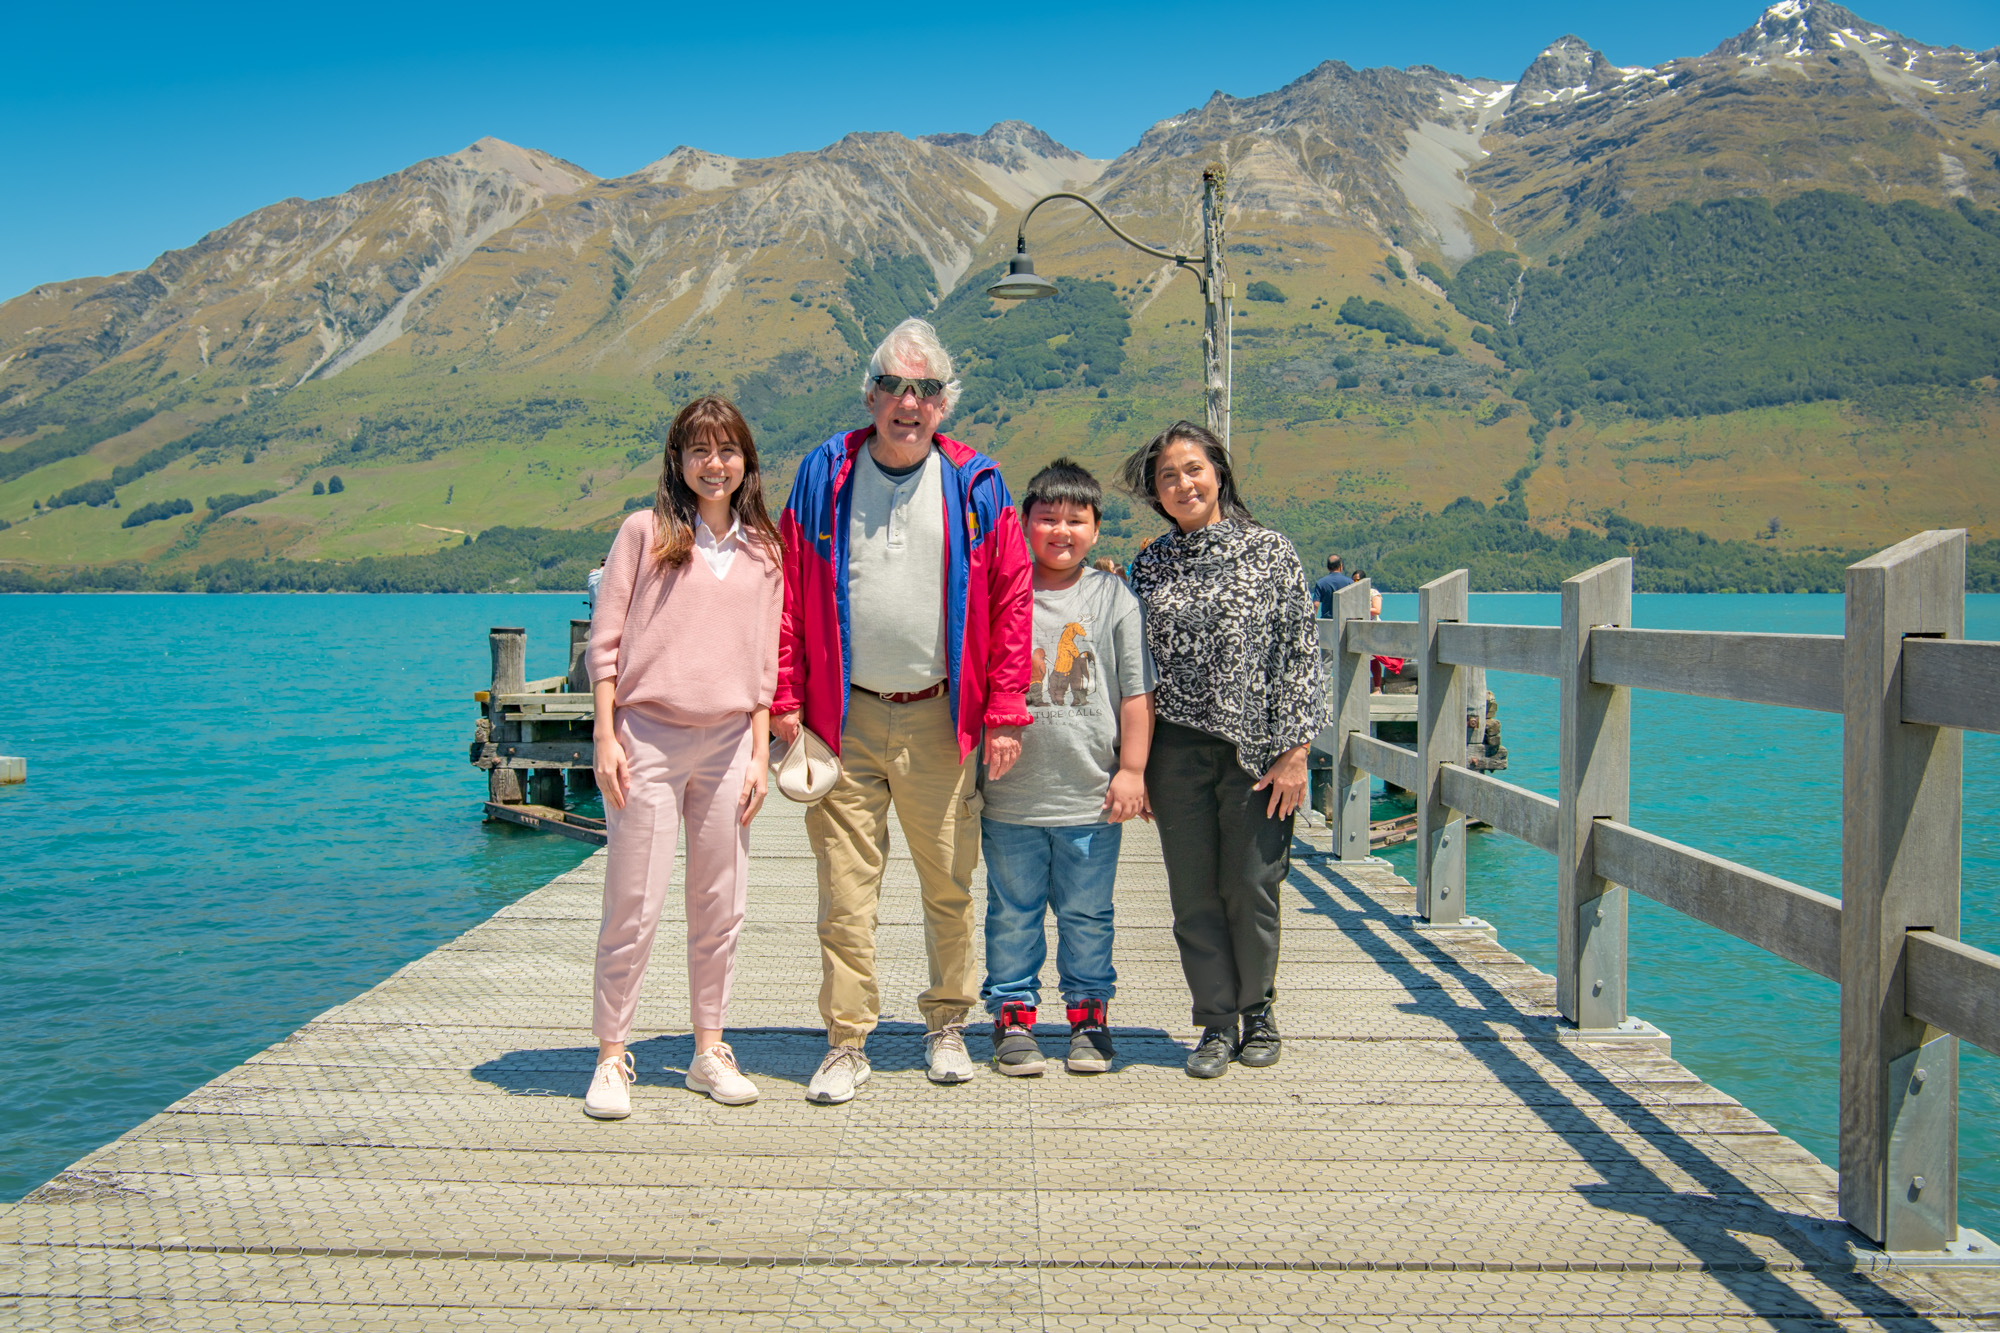 Glenorchy Township - South Island Points of Interest